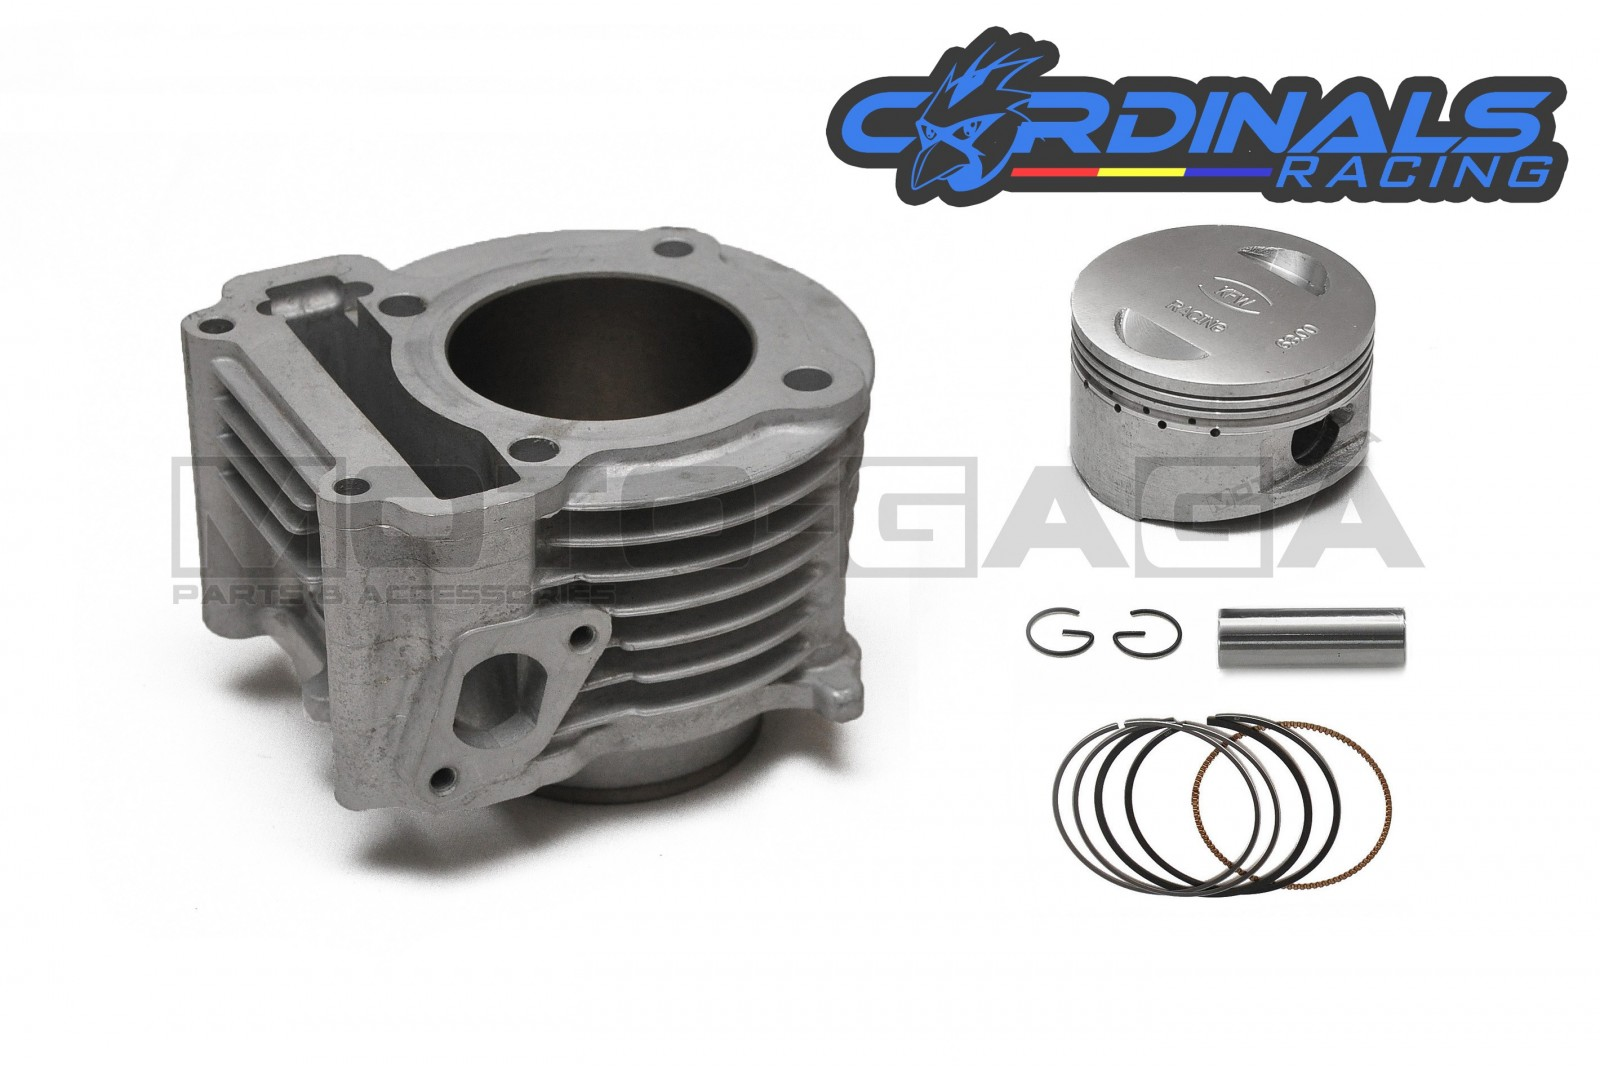 Cardinals Racing Ceramic Big Bore Cylinder Kit - Yamaha  Ego/Mio/Luvias/Nouvo 115 AT - 63mm (180cc)